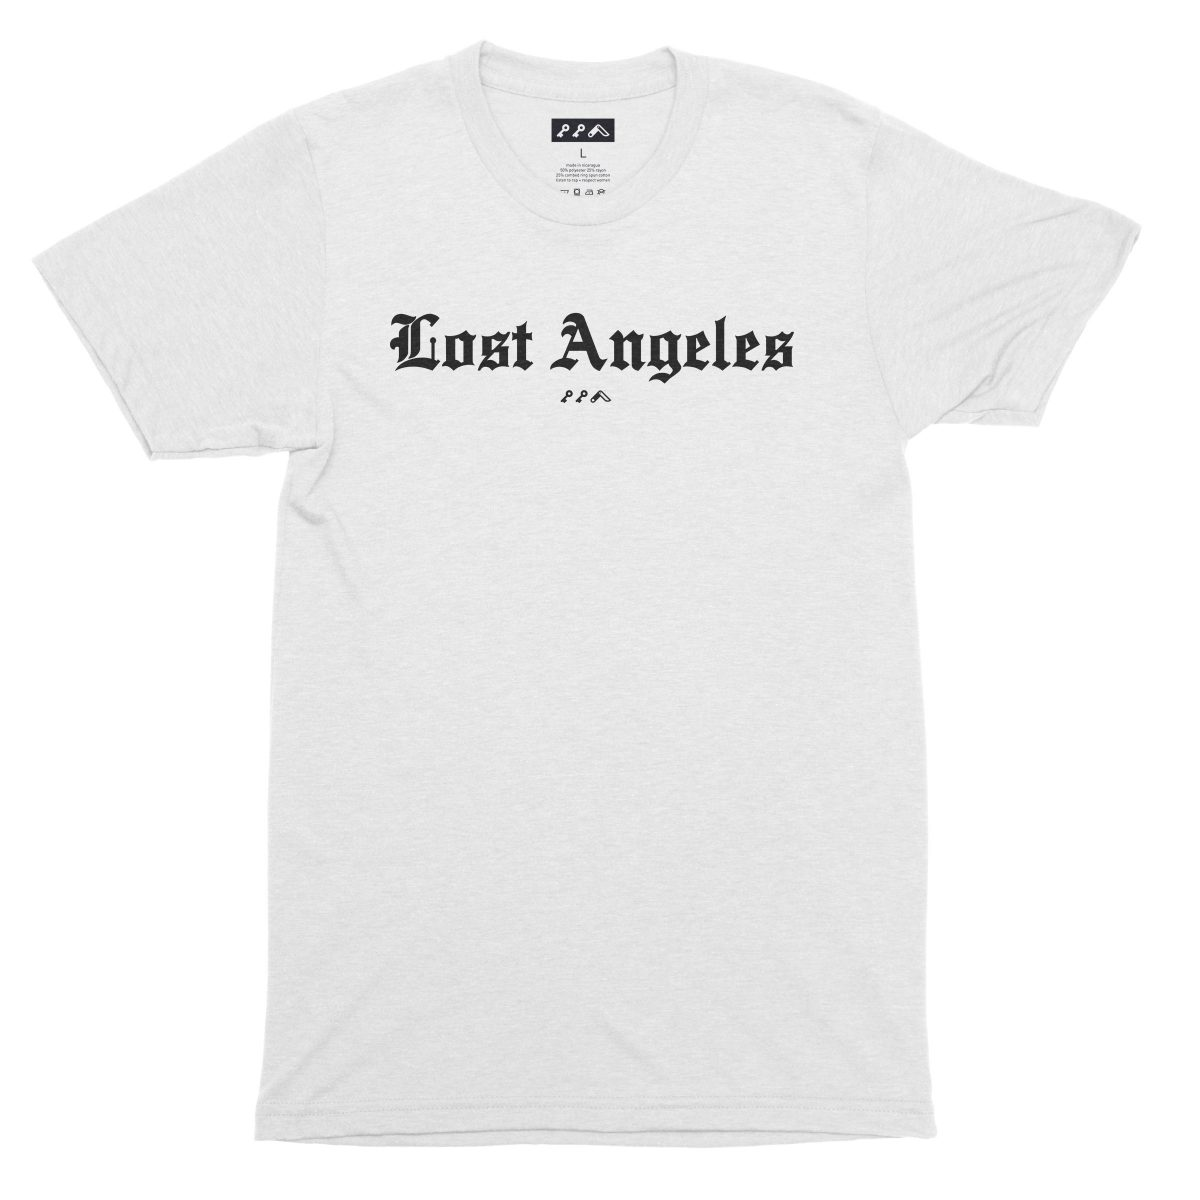 """Lost Angeles"" soft tri-blend t-shirts in white by KIKICUTT"